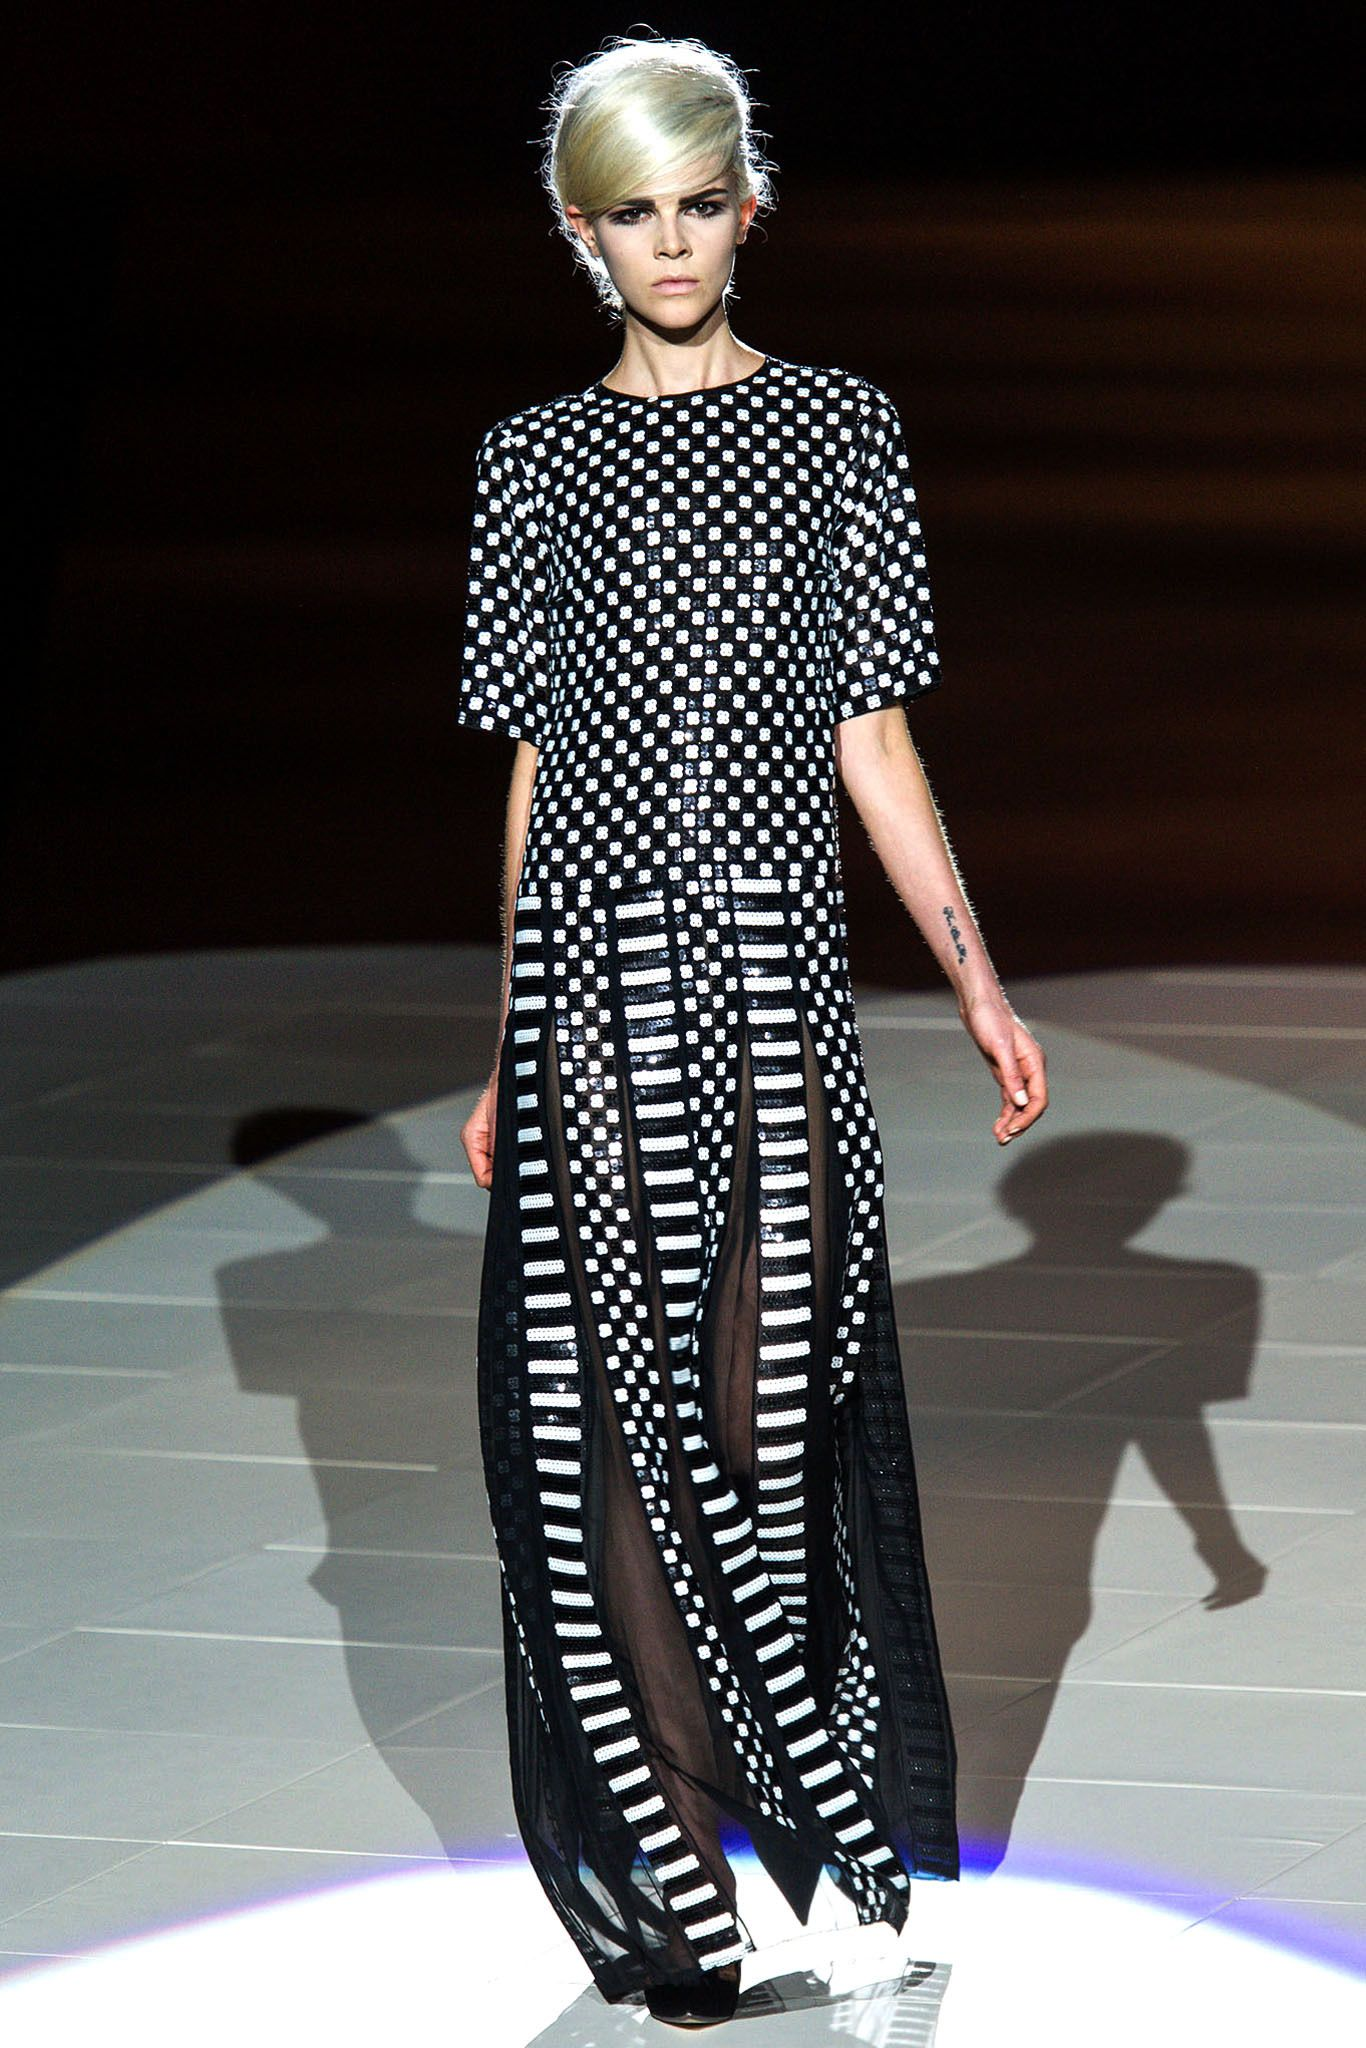 Forum on this topic: Marc Jacobs SpringSummer 2013 RTW – New , marc-jacobs-springsummer-2013-rtw-new/